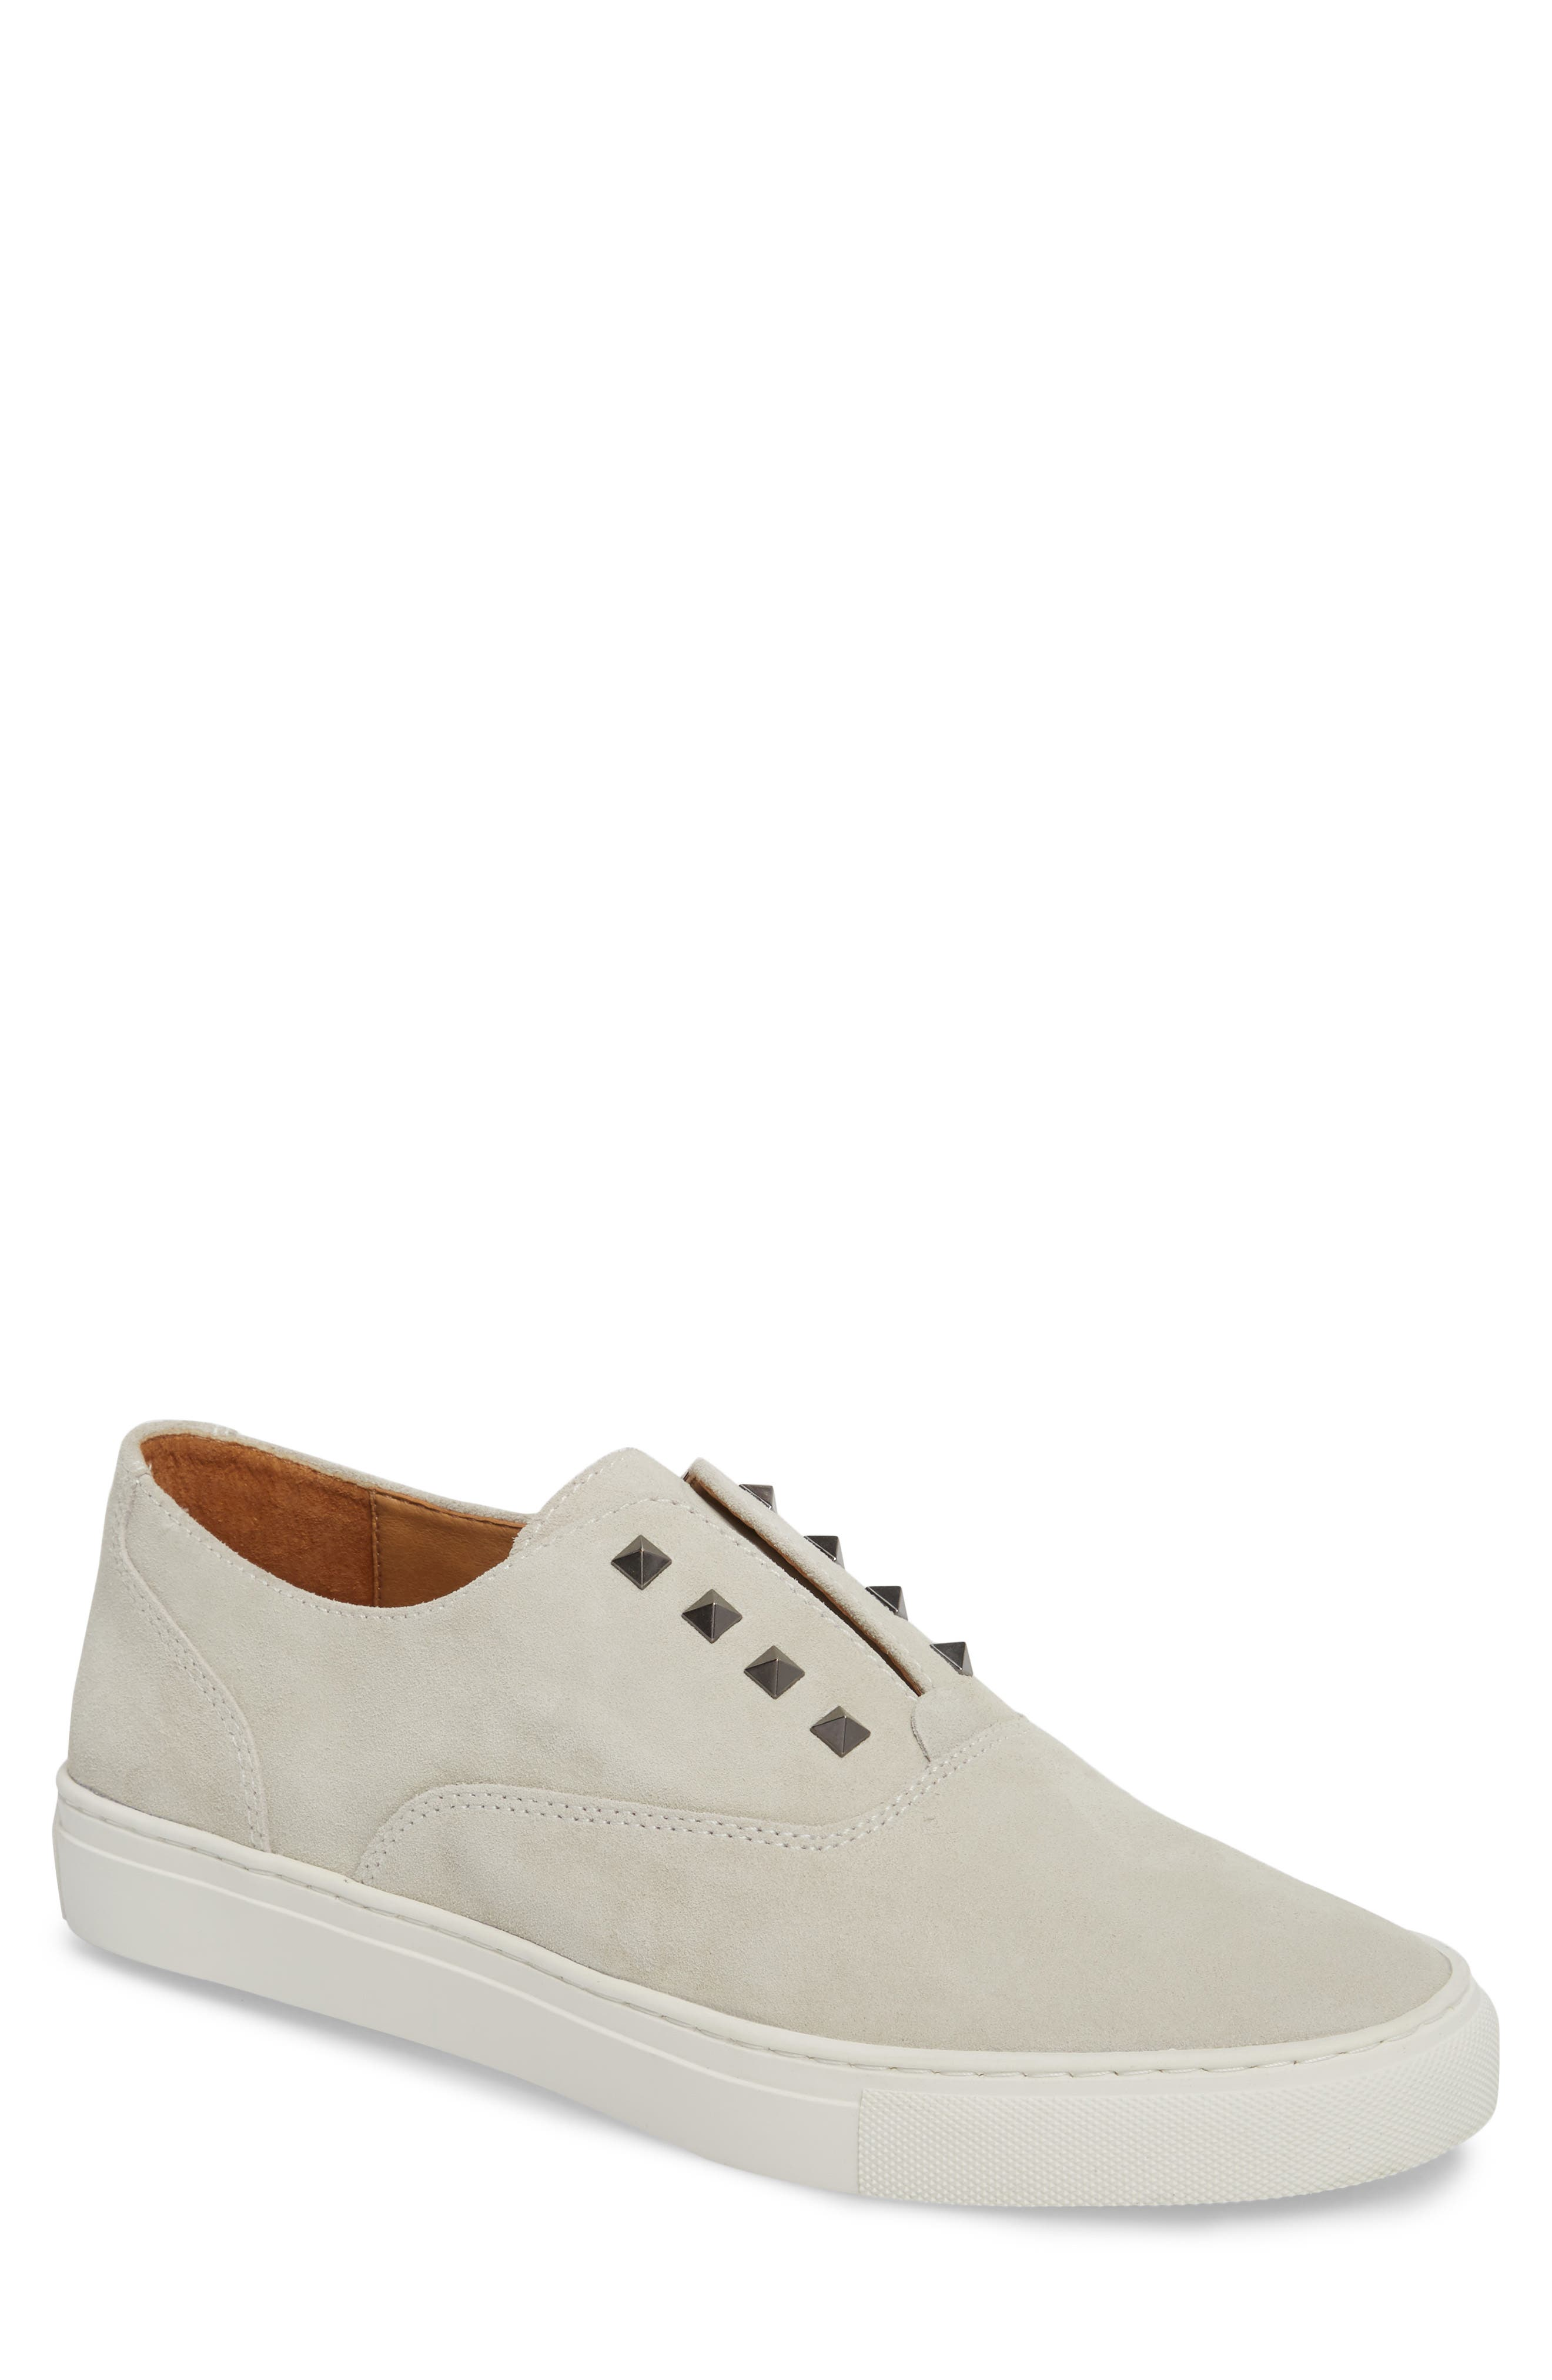 Aryo Studded Laceless Sneaker,                         Main,                         color,